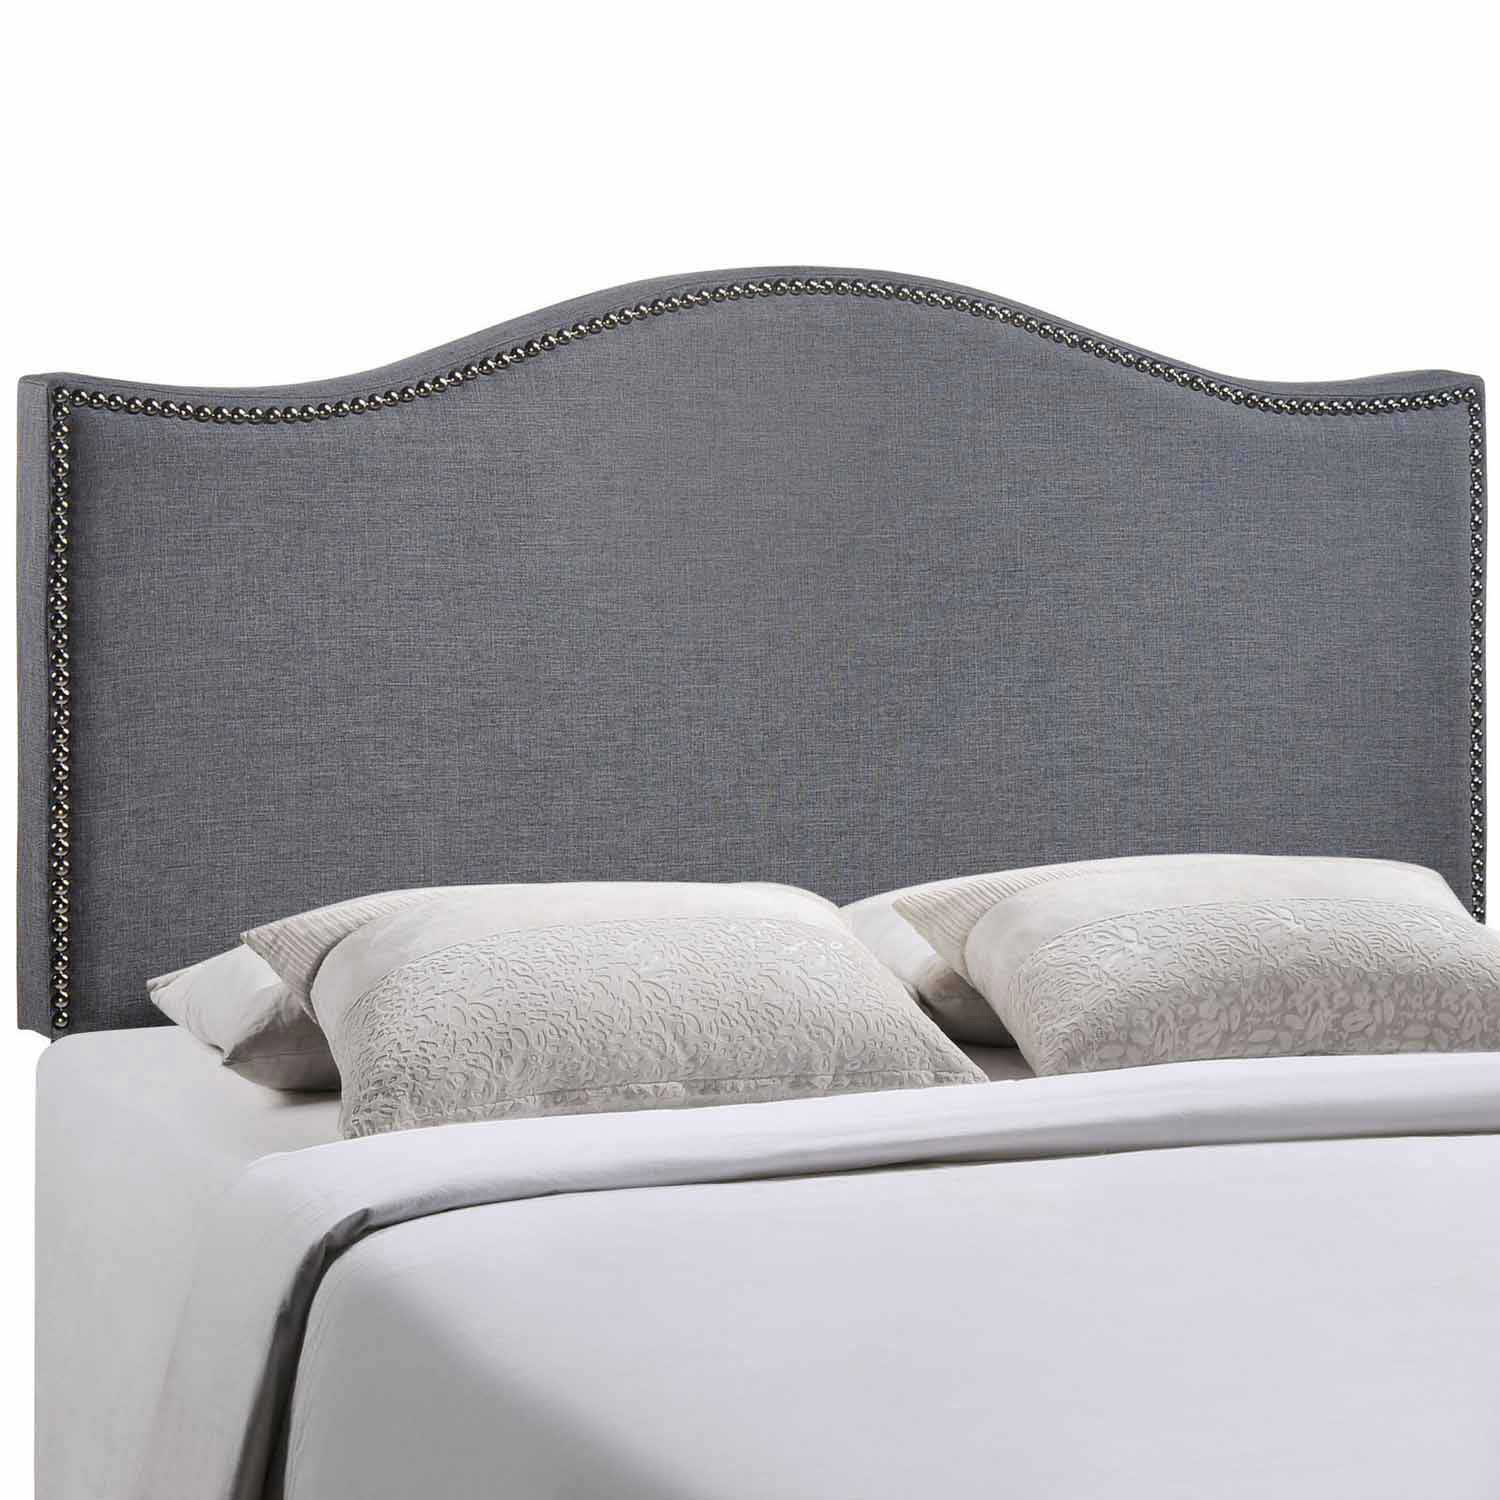 Modway Curl Queen Nailhead Upholstered Headboard - Smoke